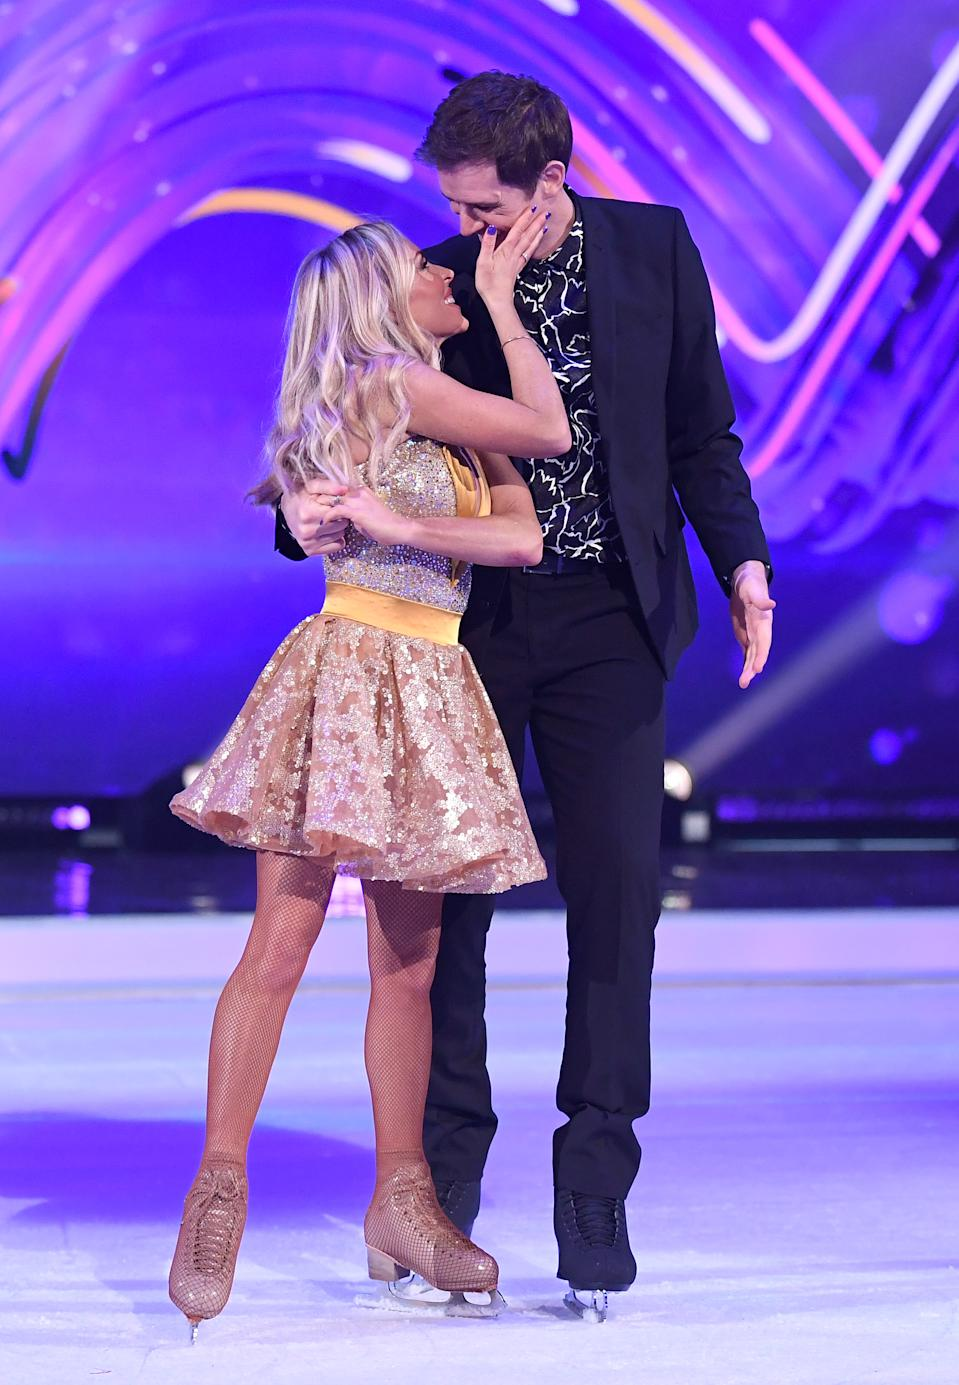 Kevin Kilbane and Brianne Delcourt during the Dancing On Ice 2019 photocall at the Dancing On Ice Studio, ITV Studios, Old Bovingdon Airfield on December 09, 2019 in Bovingdon, England. (Photo by Karwai Tang/WireImage)